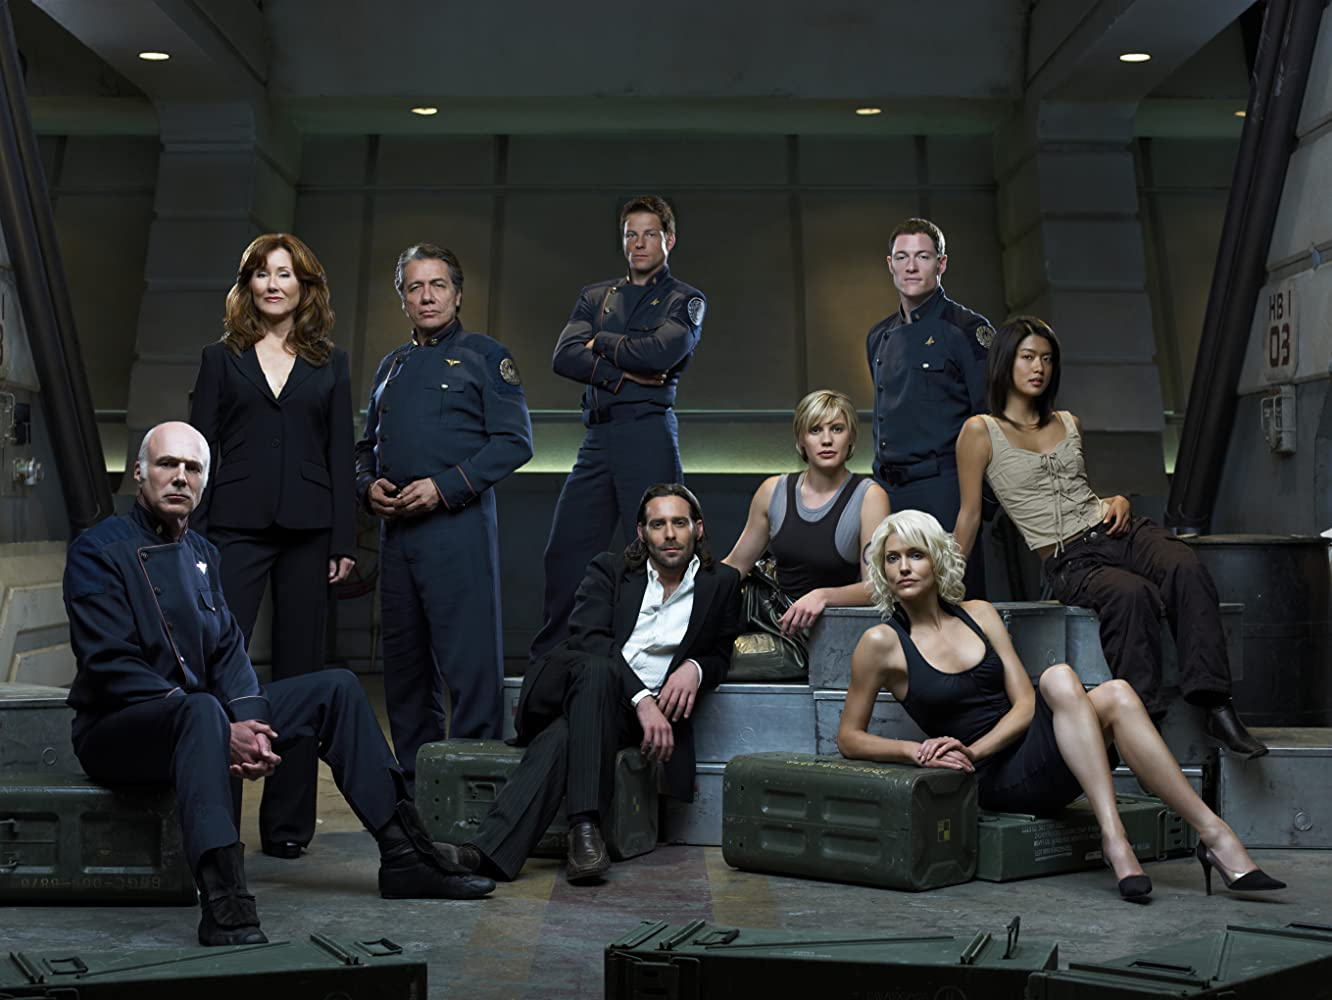 Mary McDonnell, Edward James Olmos, Jamie Bamber, James Callis, Michael Hogan, Grace Park, Tahmoh Penikett, and Tricia Helfer in Battlestar Galactica (2004)